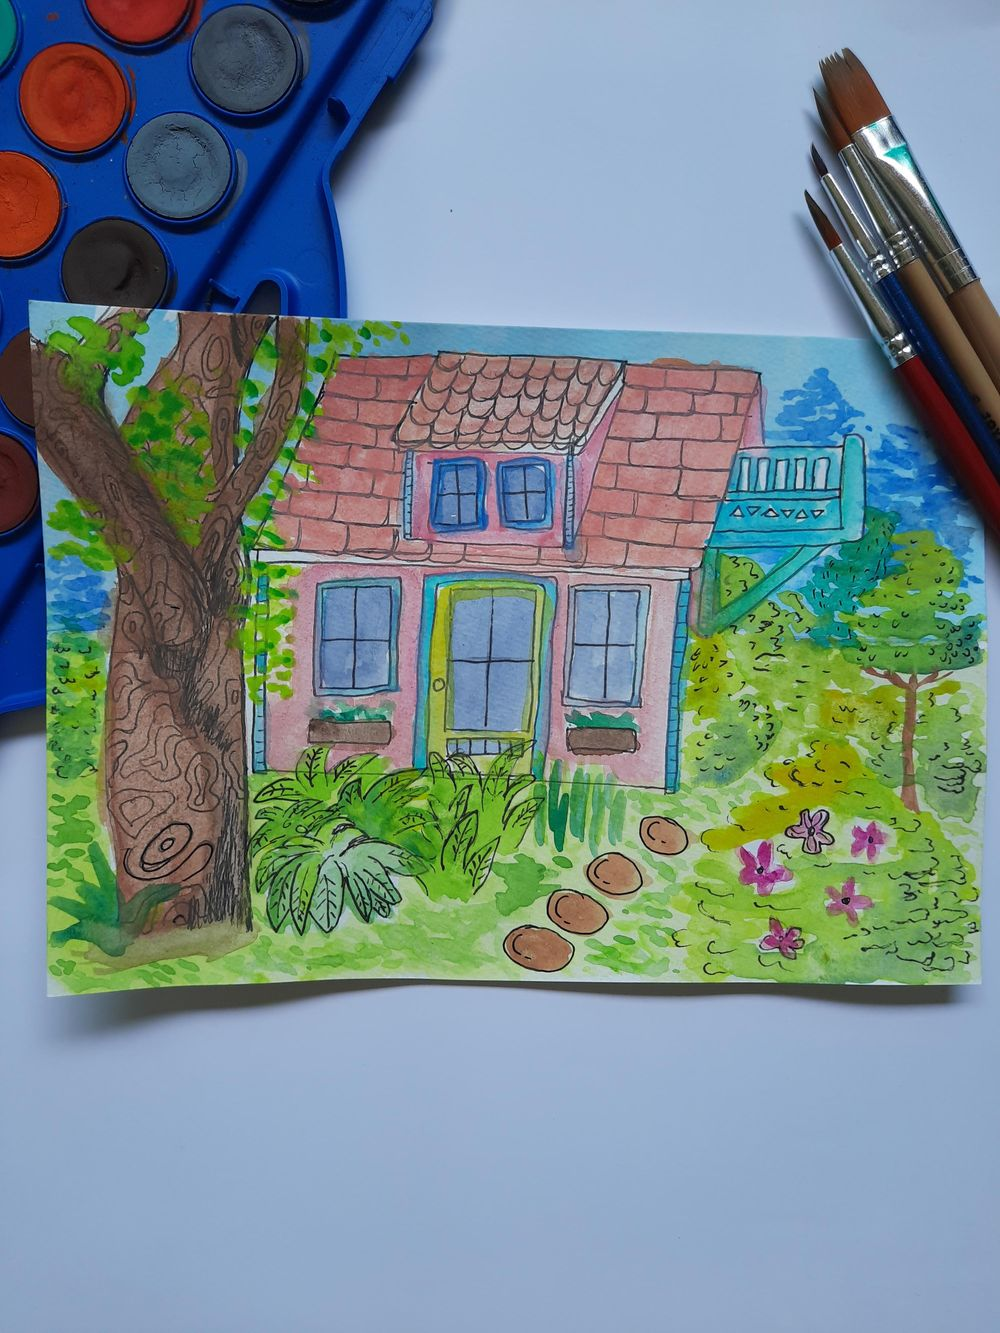 Greenery Pink House - image 5 - student project